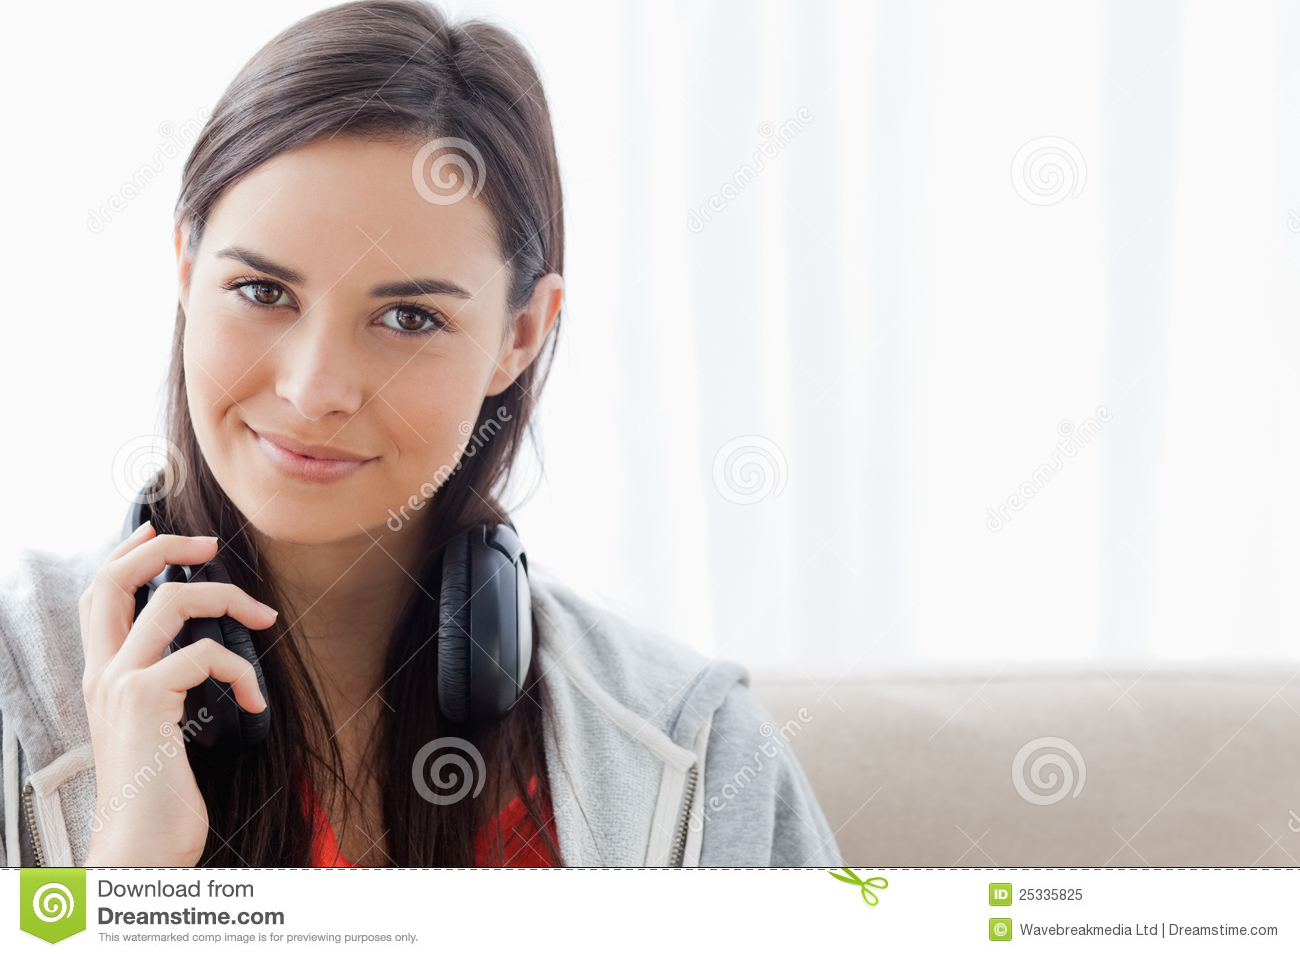 A smirking woman with headphones looks into the camera